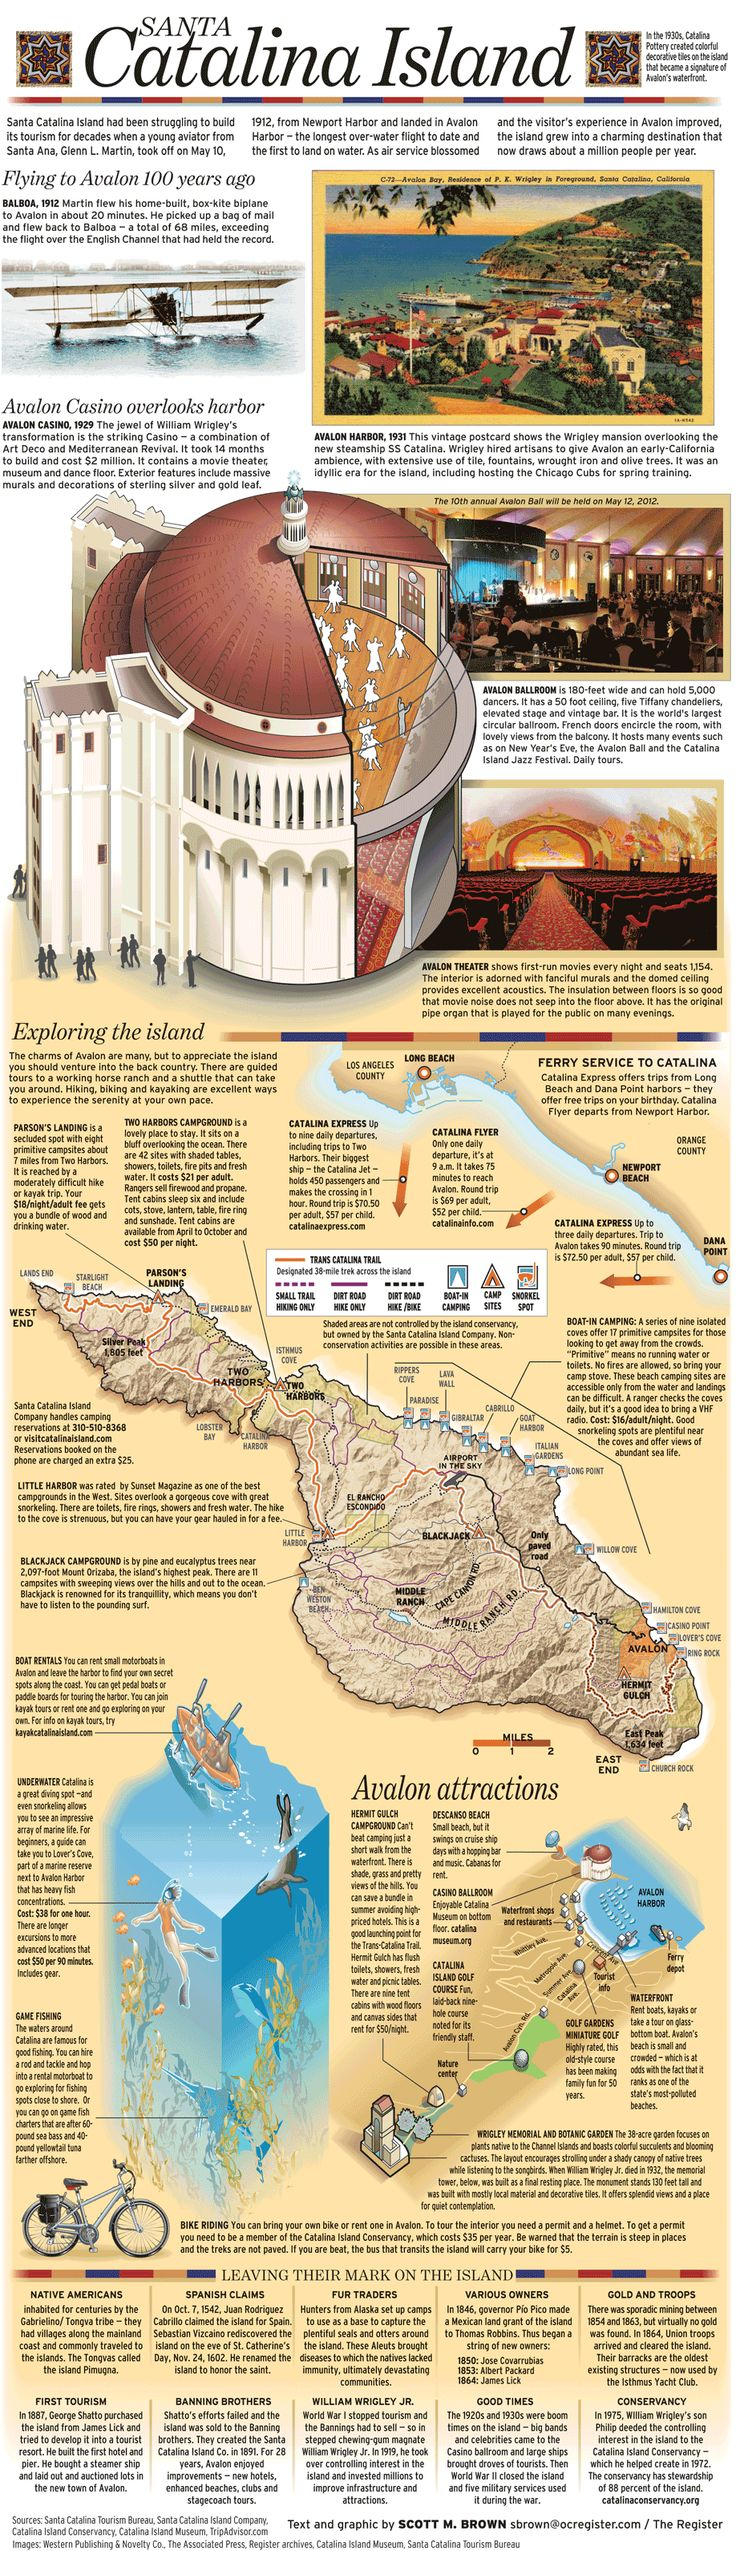 Catalina Island infographic with history and things to do if you go.